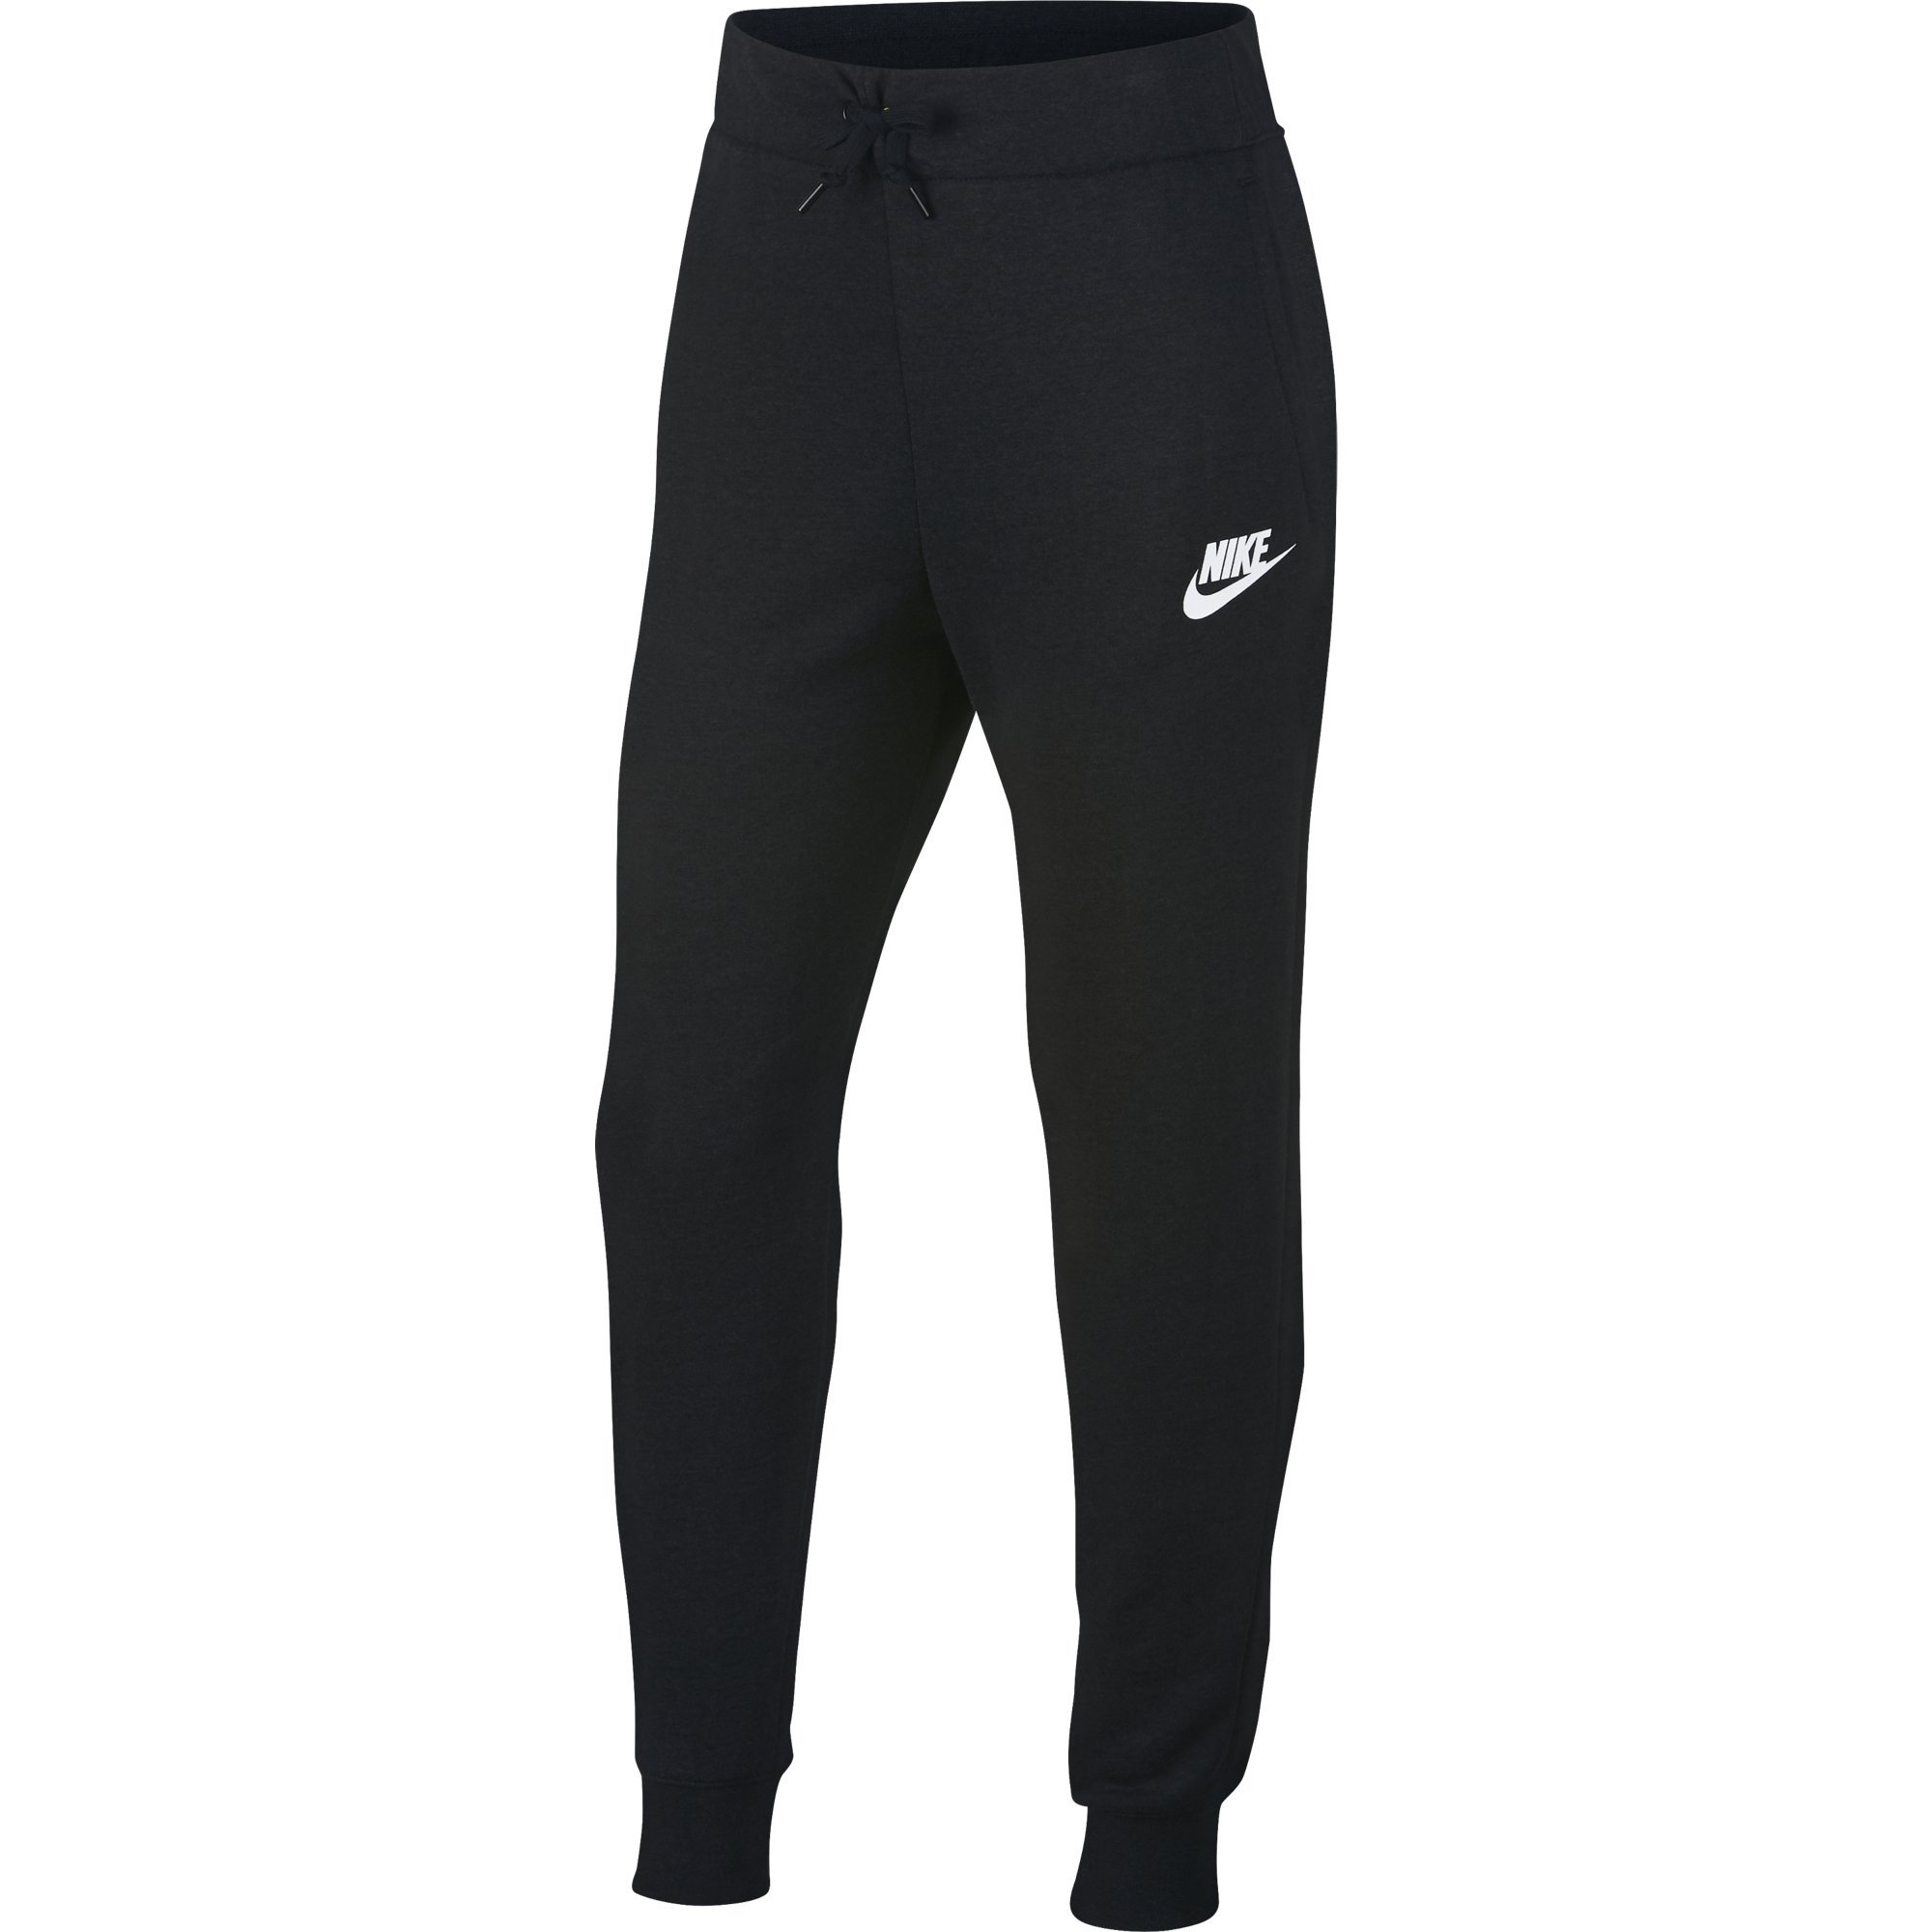 NIKE Sportswear Girls' Pants, Black/White, X-Small